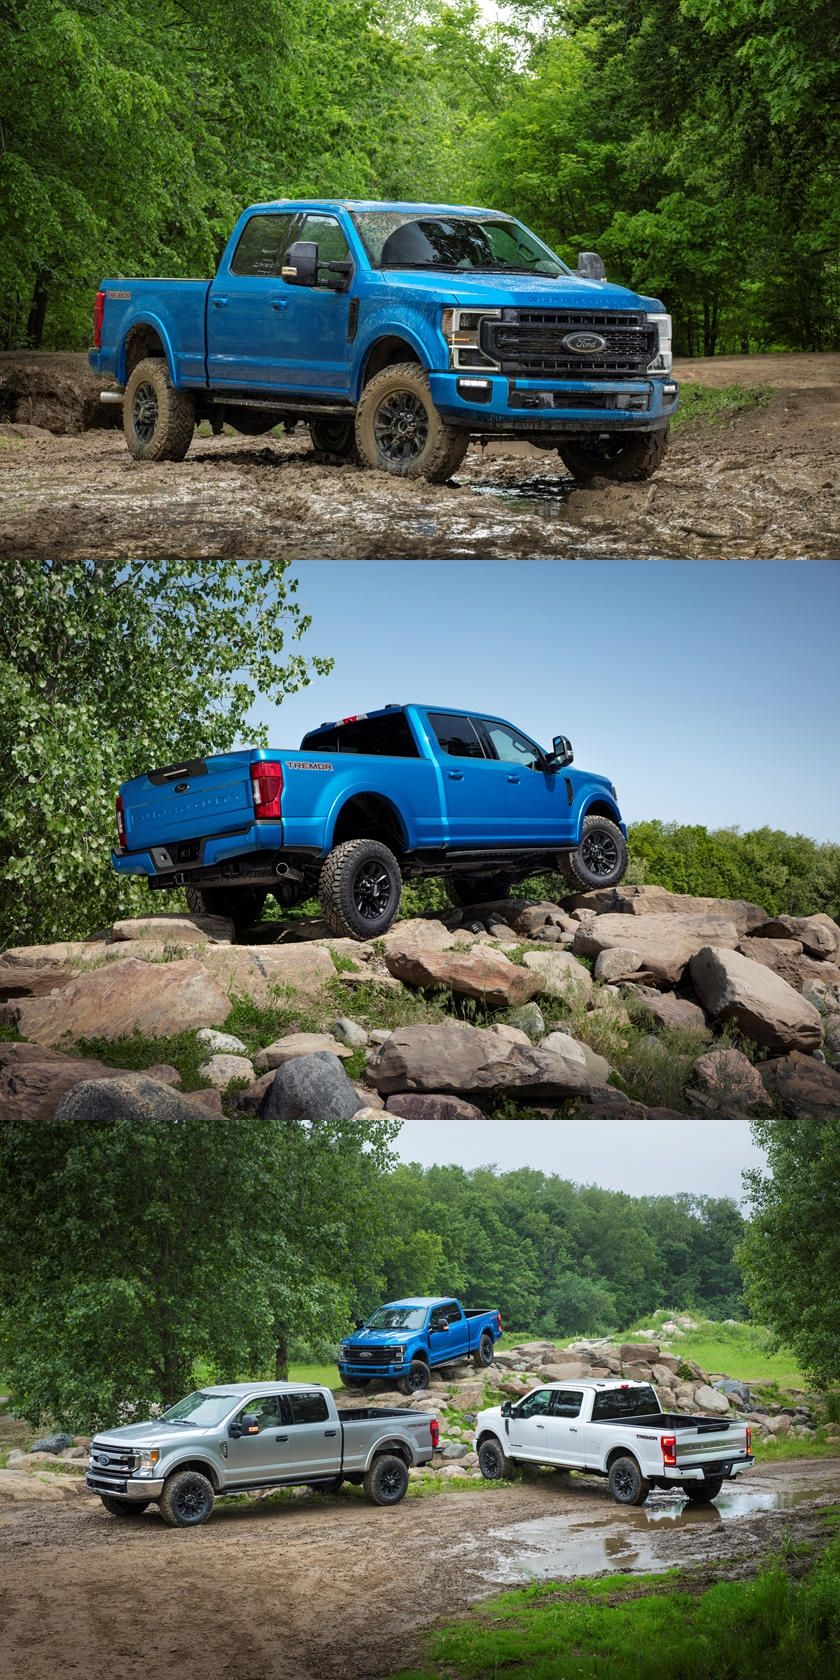 Ford S 7 3 Liter Godzilla V8 Is About To Get Even Better With A Little Help From Whipple In 2020 Godzilla Ford Powerstroke Diesel